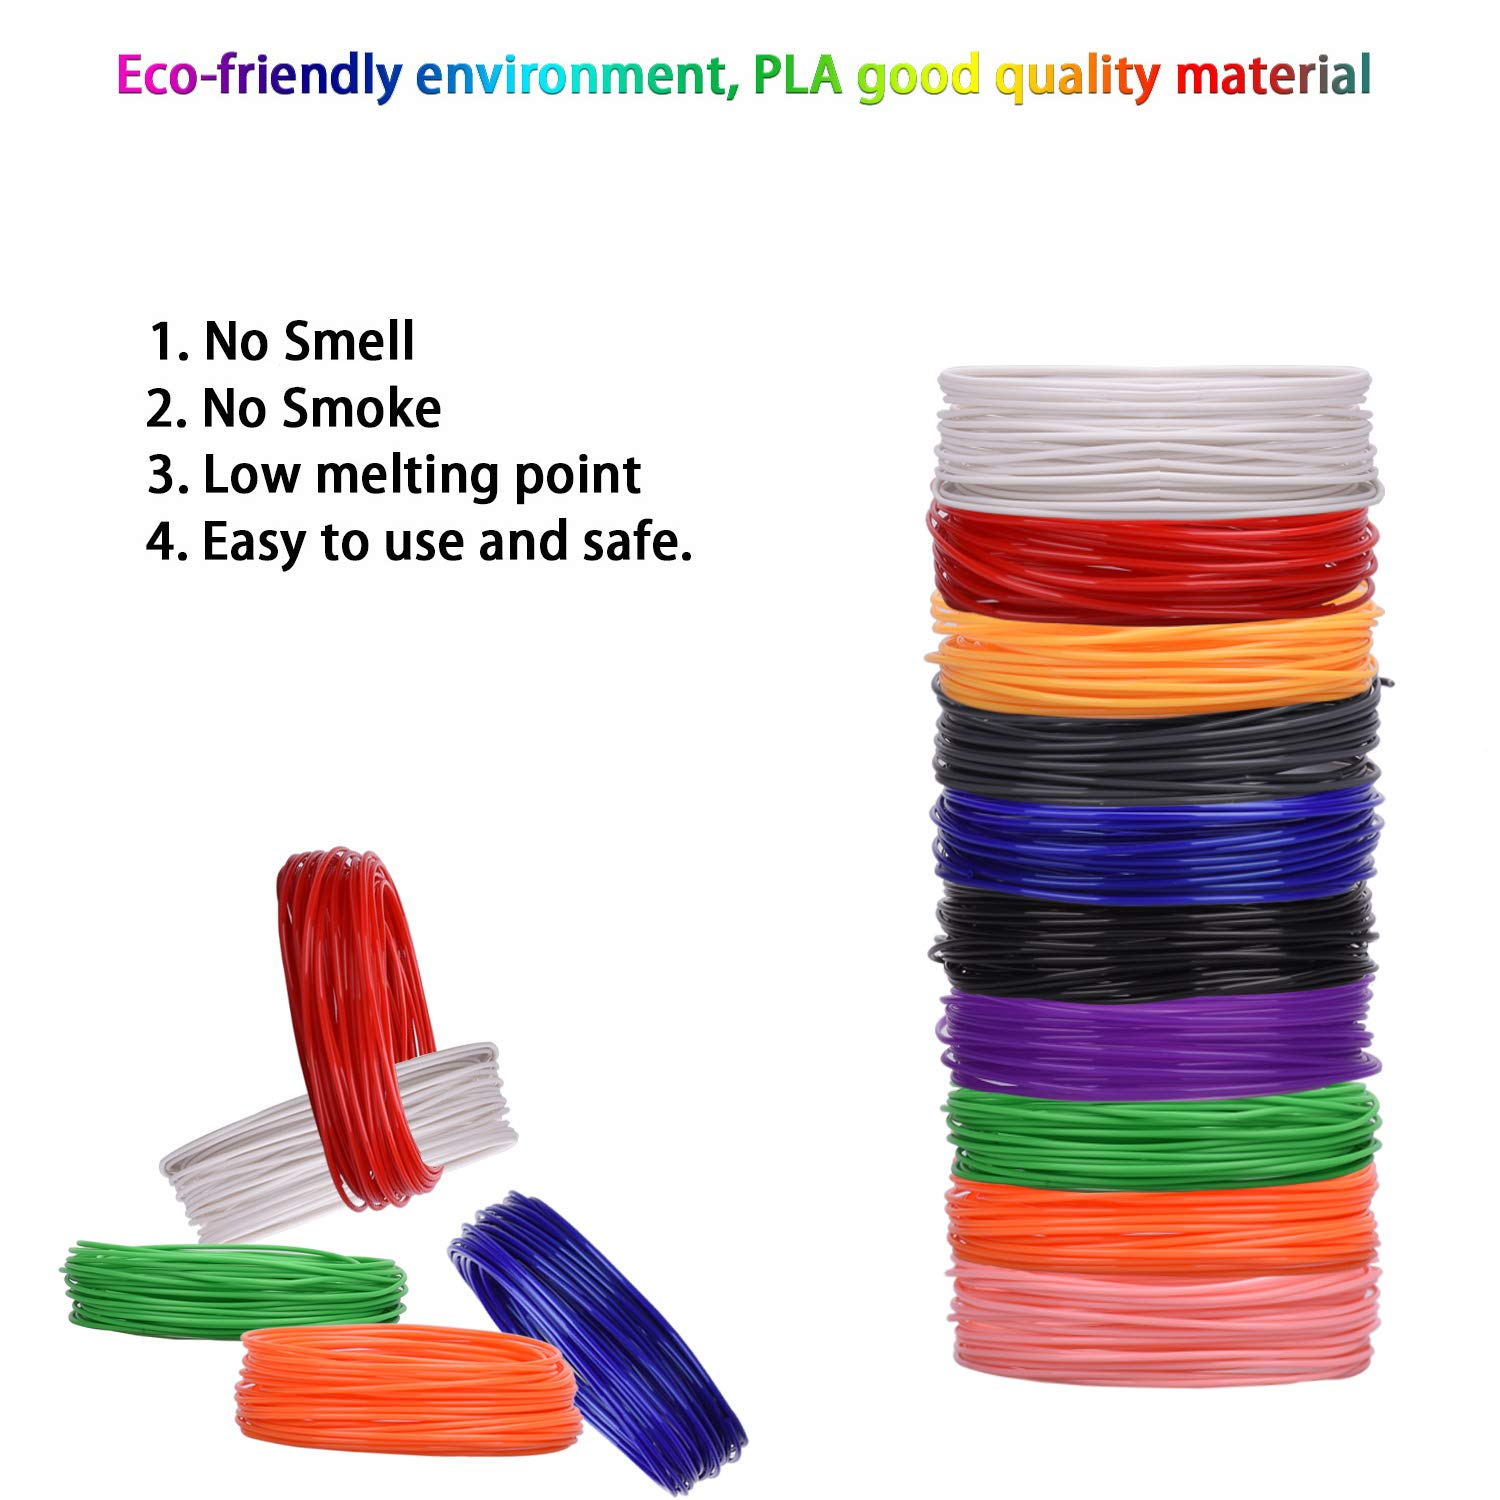 3D Printing Pen Filament Refills PLA Filament 1.75mm Total 320 Feet 3D Pen Filament for Kids No-Toxic Odorless PLA 3D Pen Filament Ananteke 3D Printing pen AN-20 PLA US 10 Color Each 32 feet